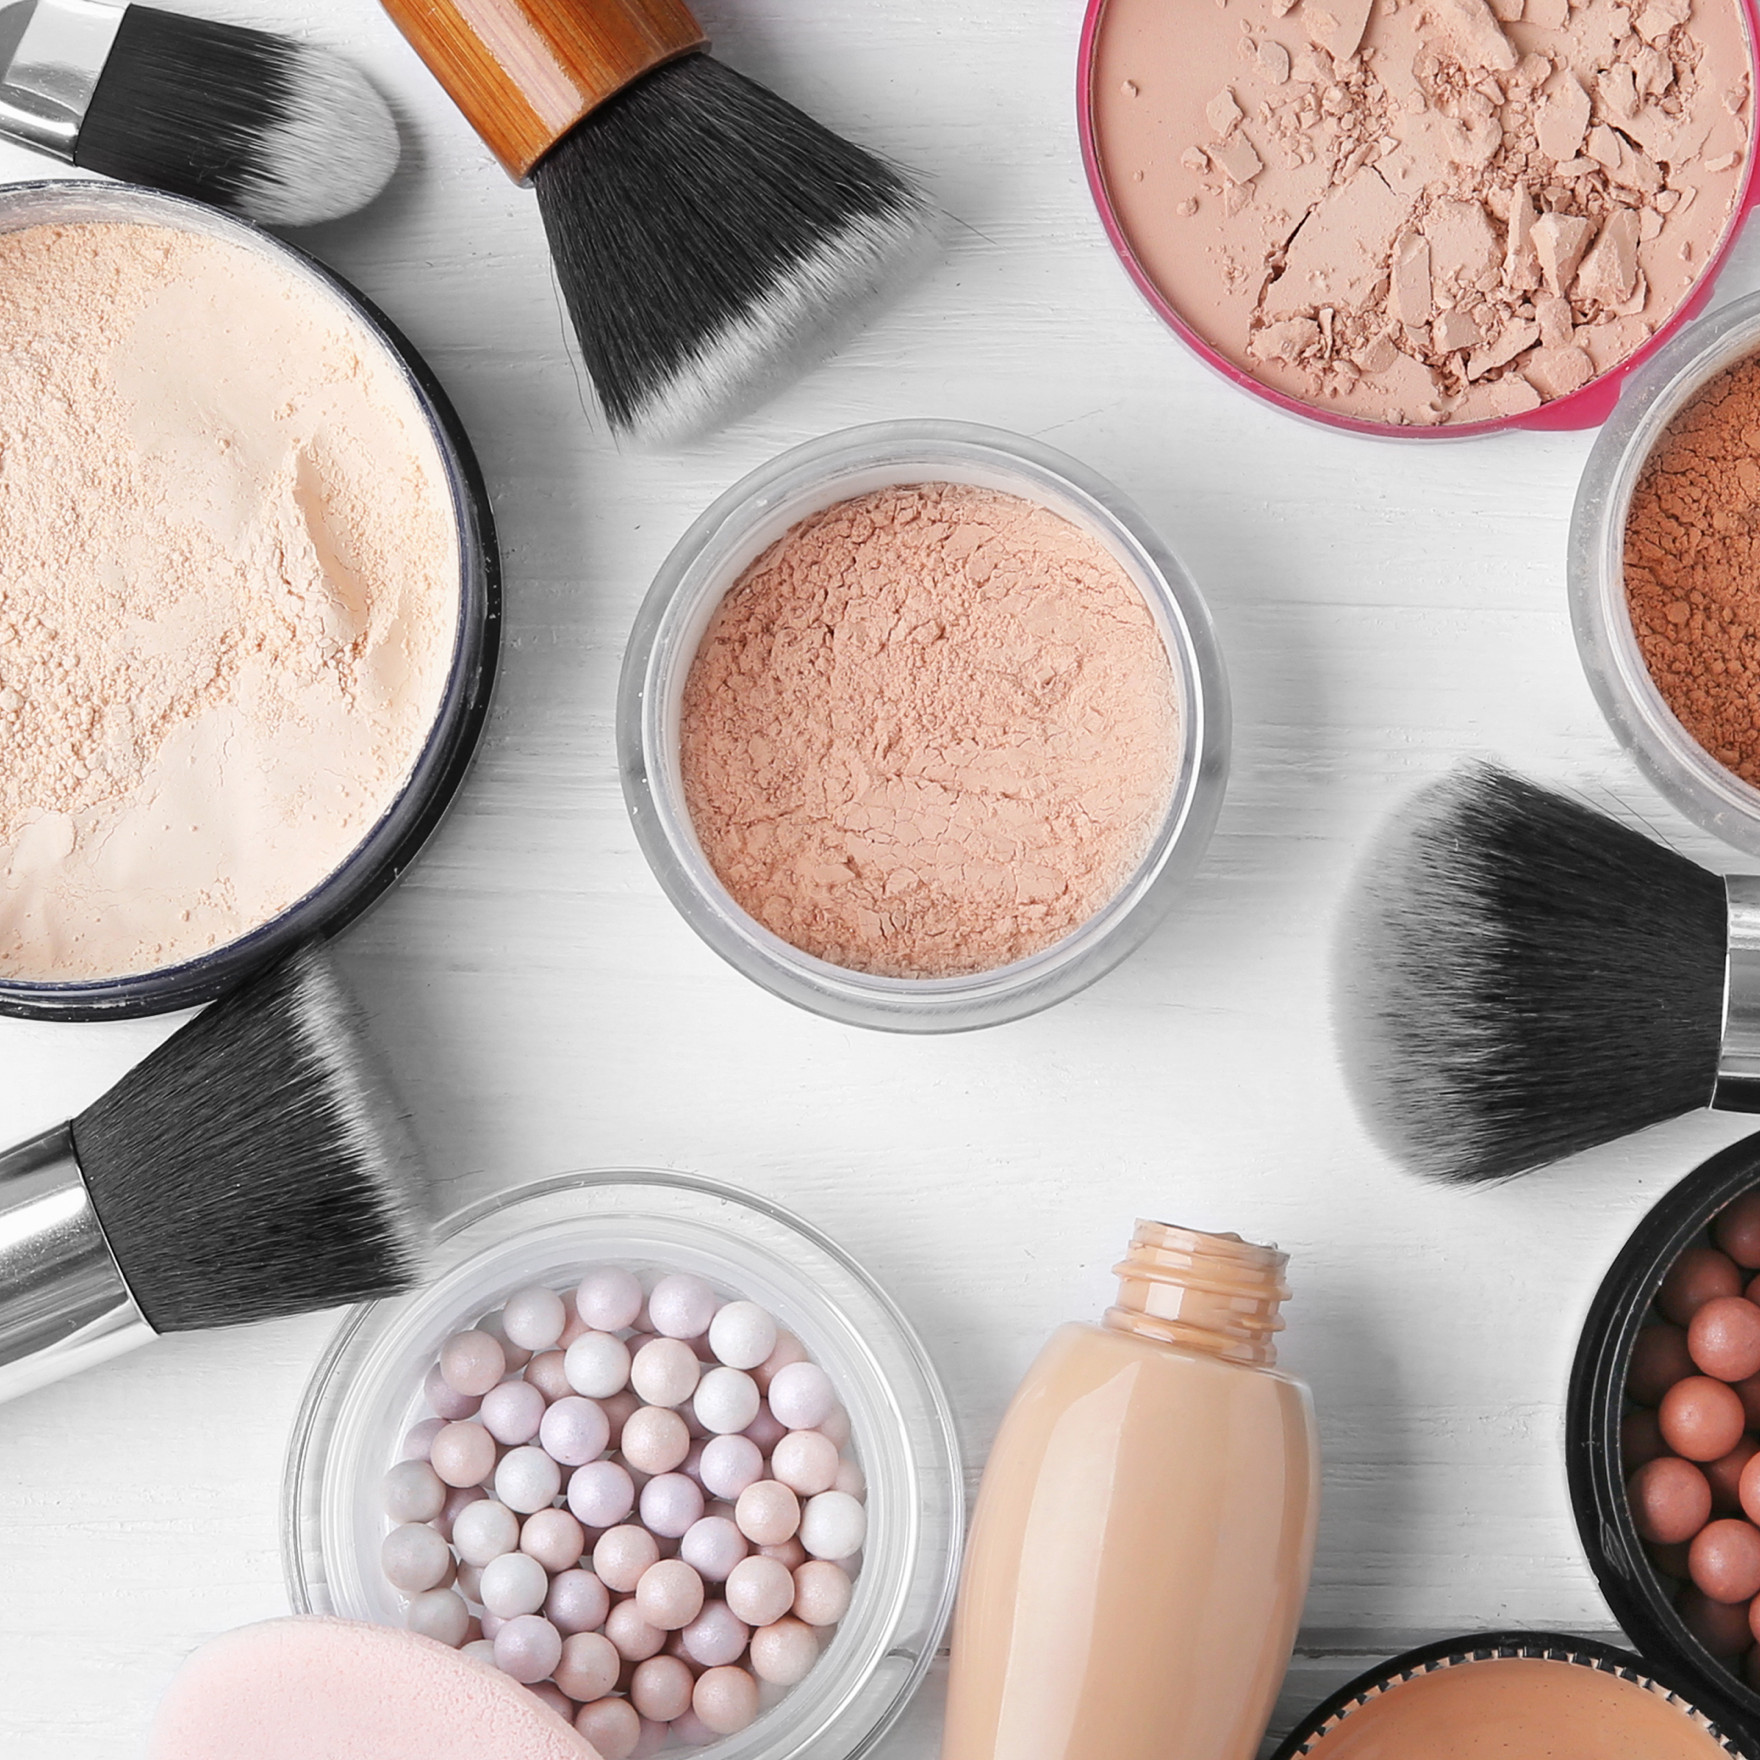 Stunning cosmetic product photography makeup products and